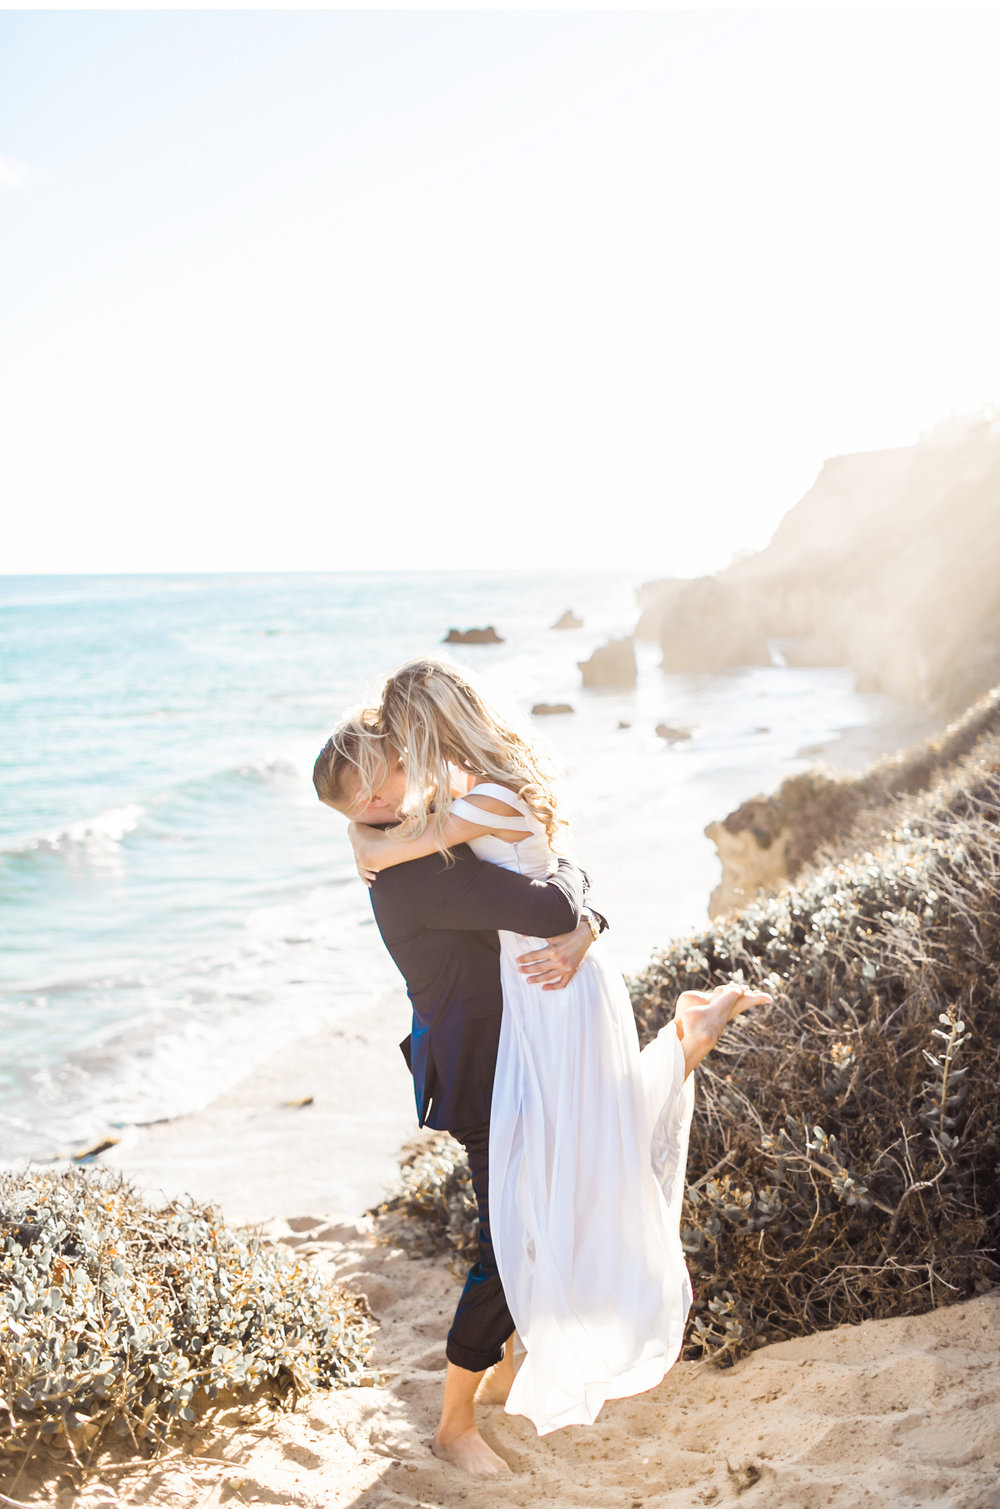 Style-Me-Pretty-Malibu-Wedding-Natalie-Schutt-Photography_07.jpg